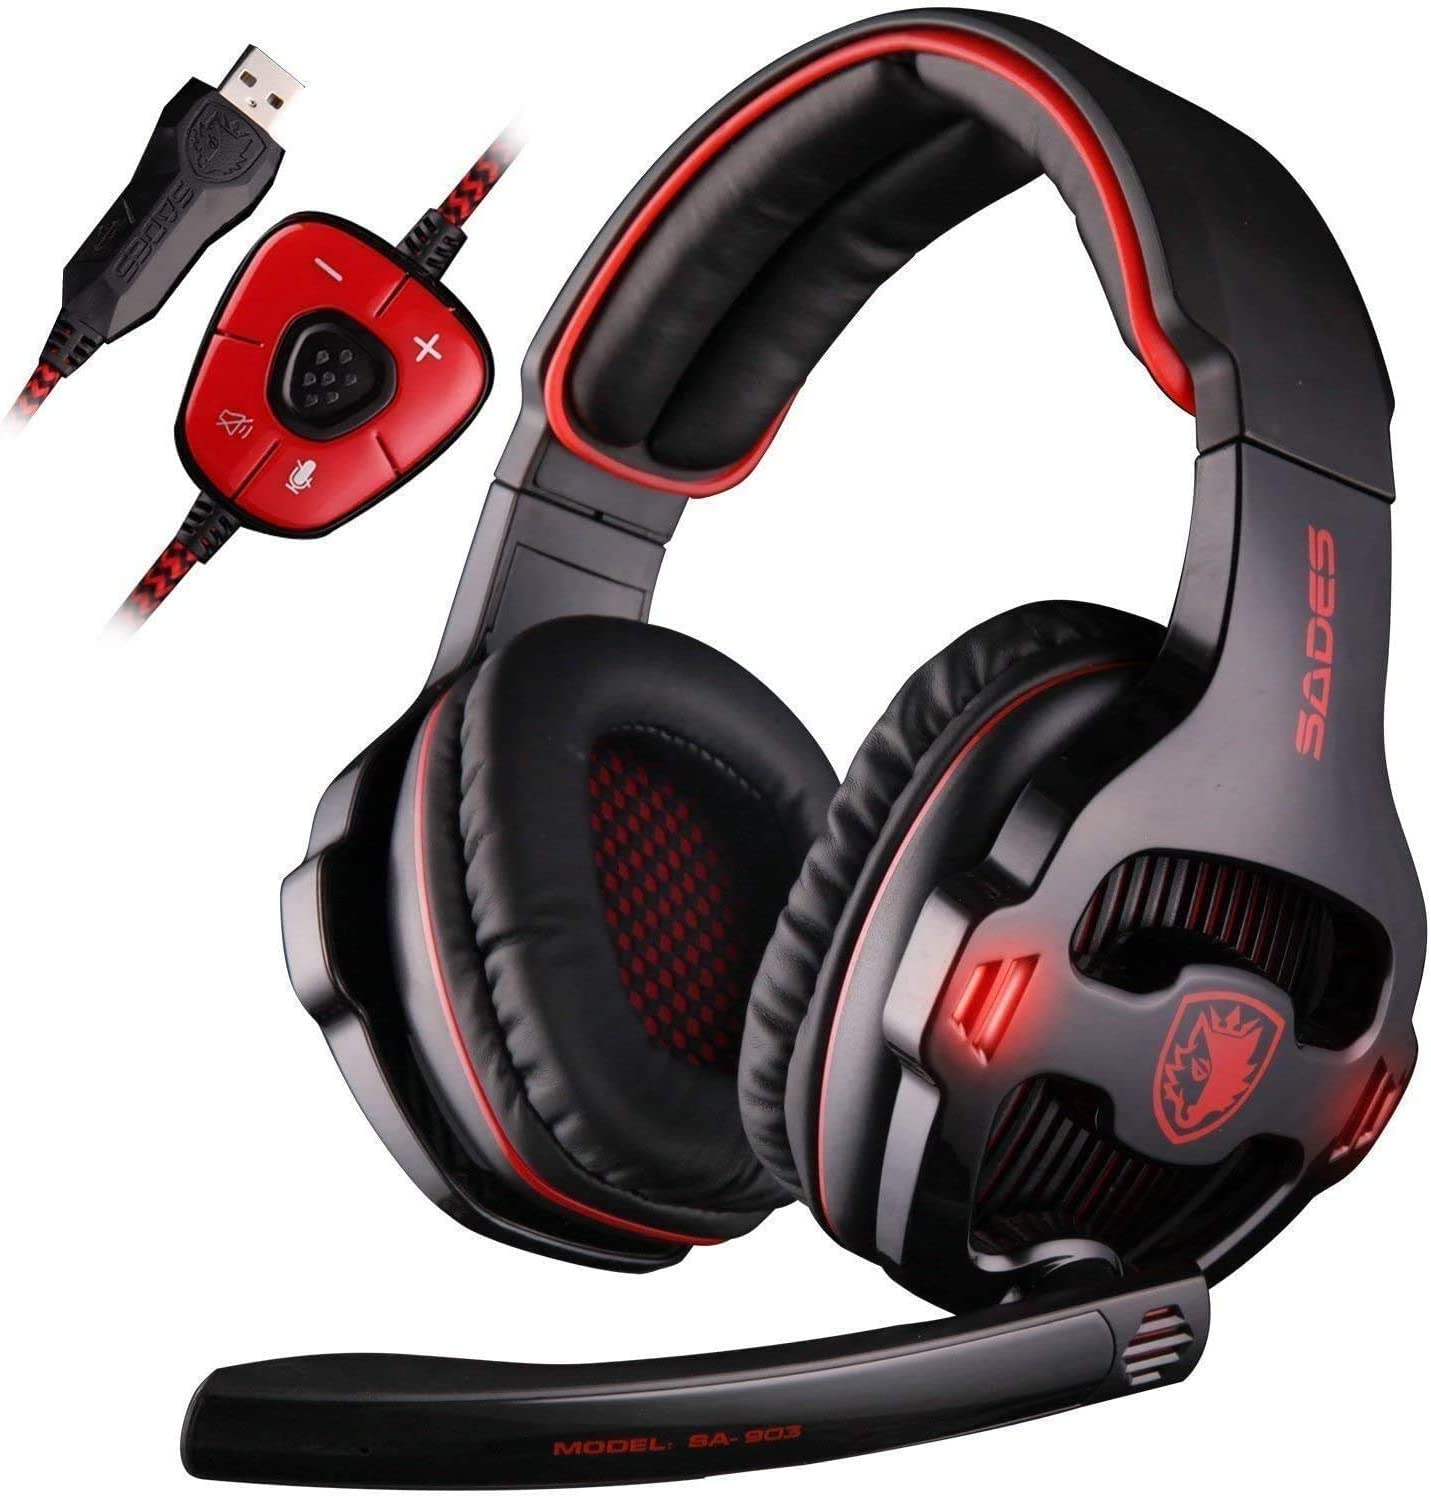 Sades Wired USB 7.1 Channel Virtual Surround Stereo Gaming Headset Over Ear Headphones with Mic Revolution Volume Control & Noise Canceling & LED Light for PC Mac Computer Games Laptop-Red